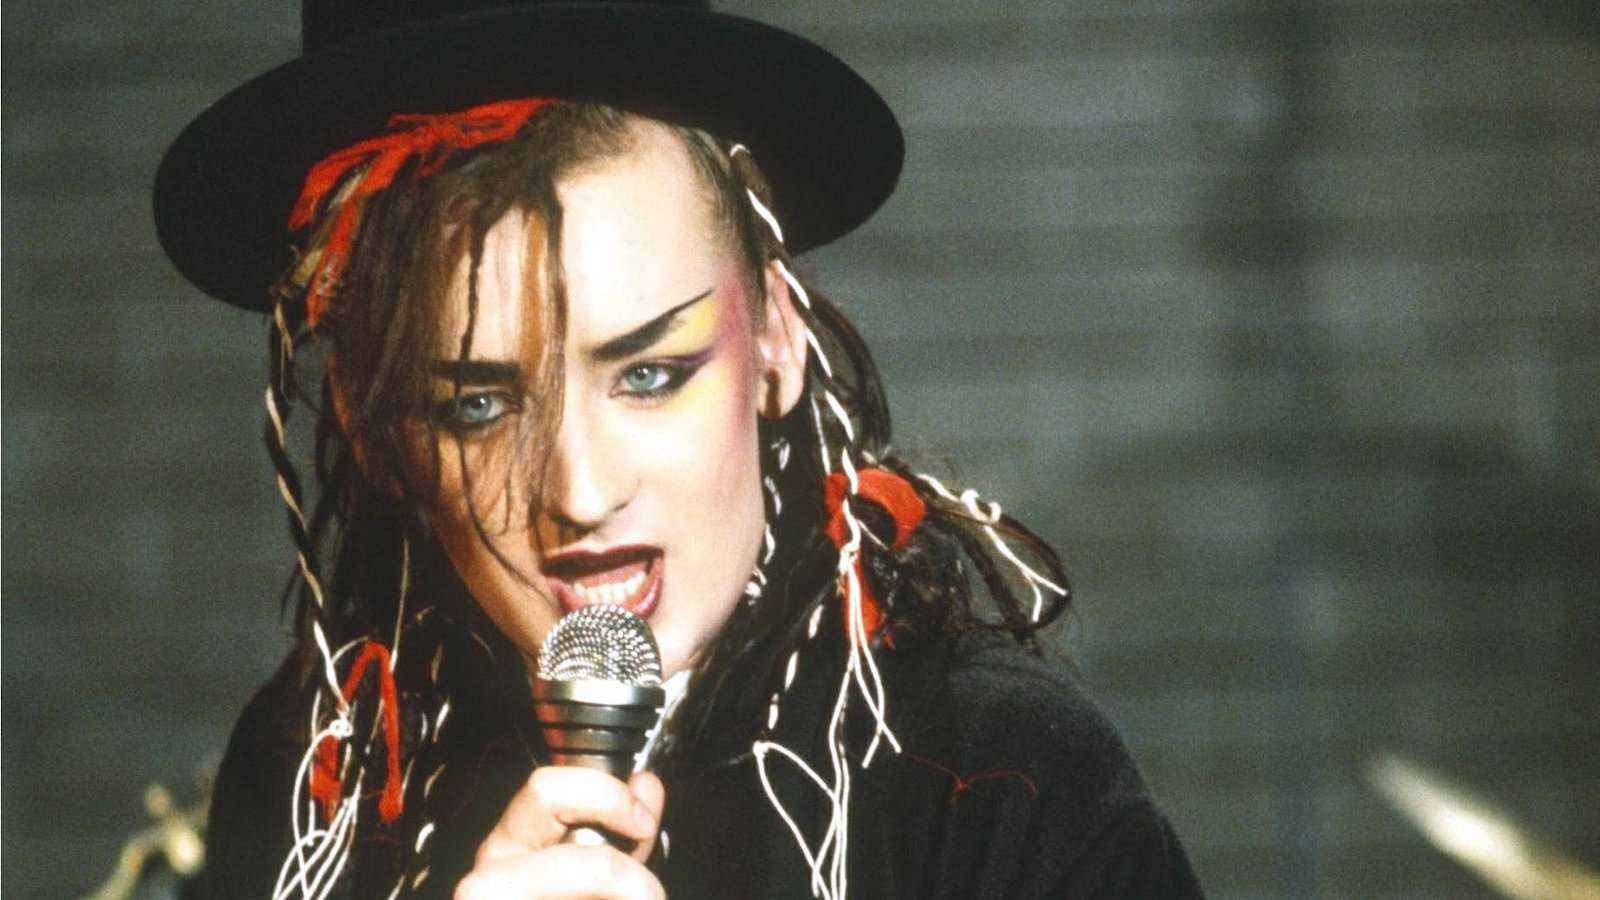 Who could ever forget the gay British icon and singer Boy George?